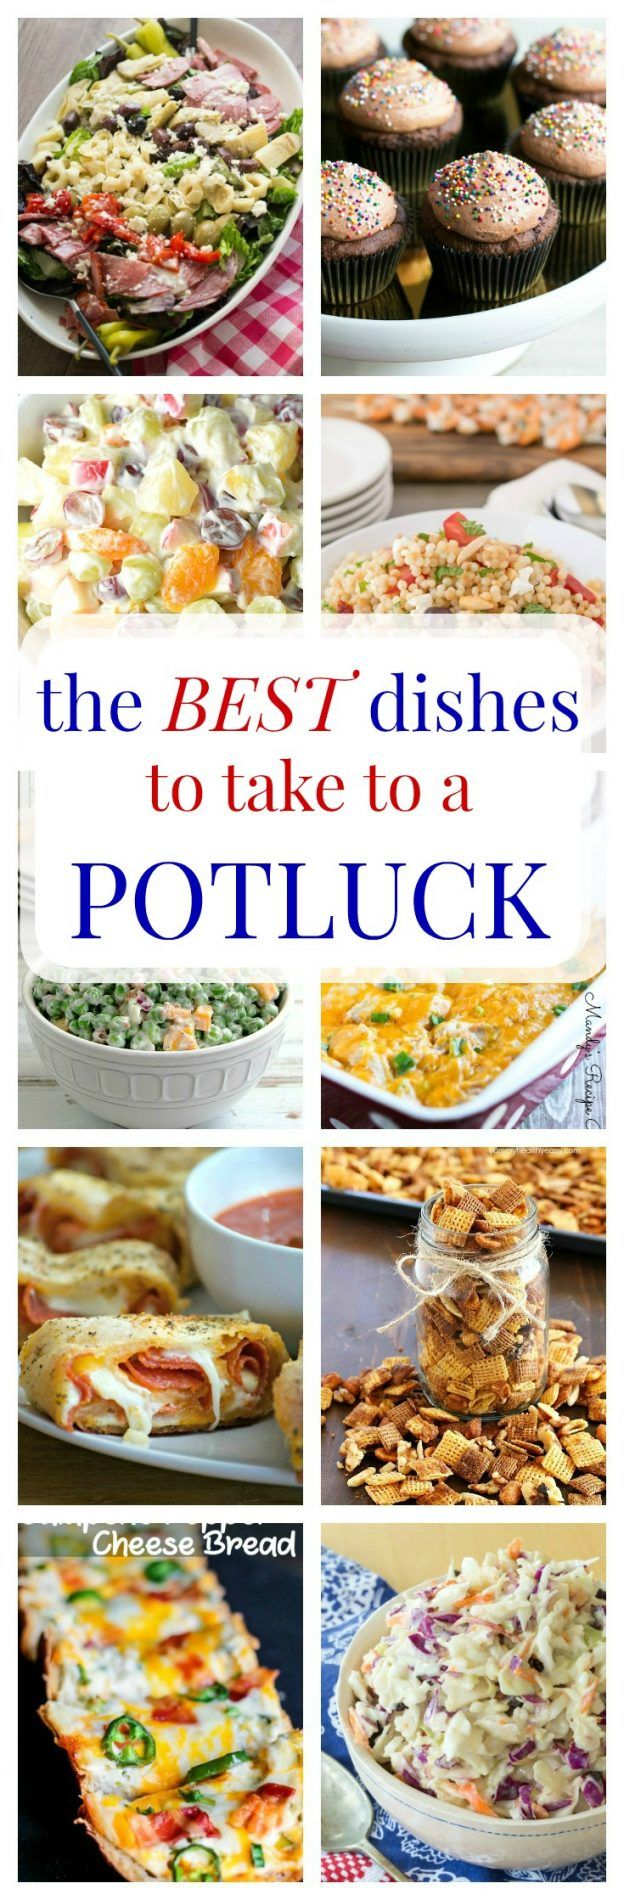 Best Dishes to take to a Potluck - easy recipes that feed a crowd for delicious appetizers, snacks sides, desserts, and more!